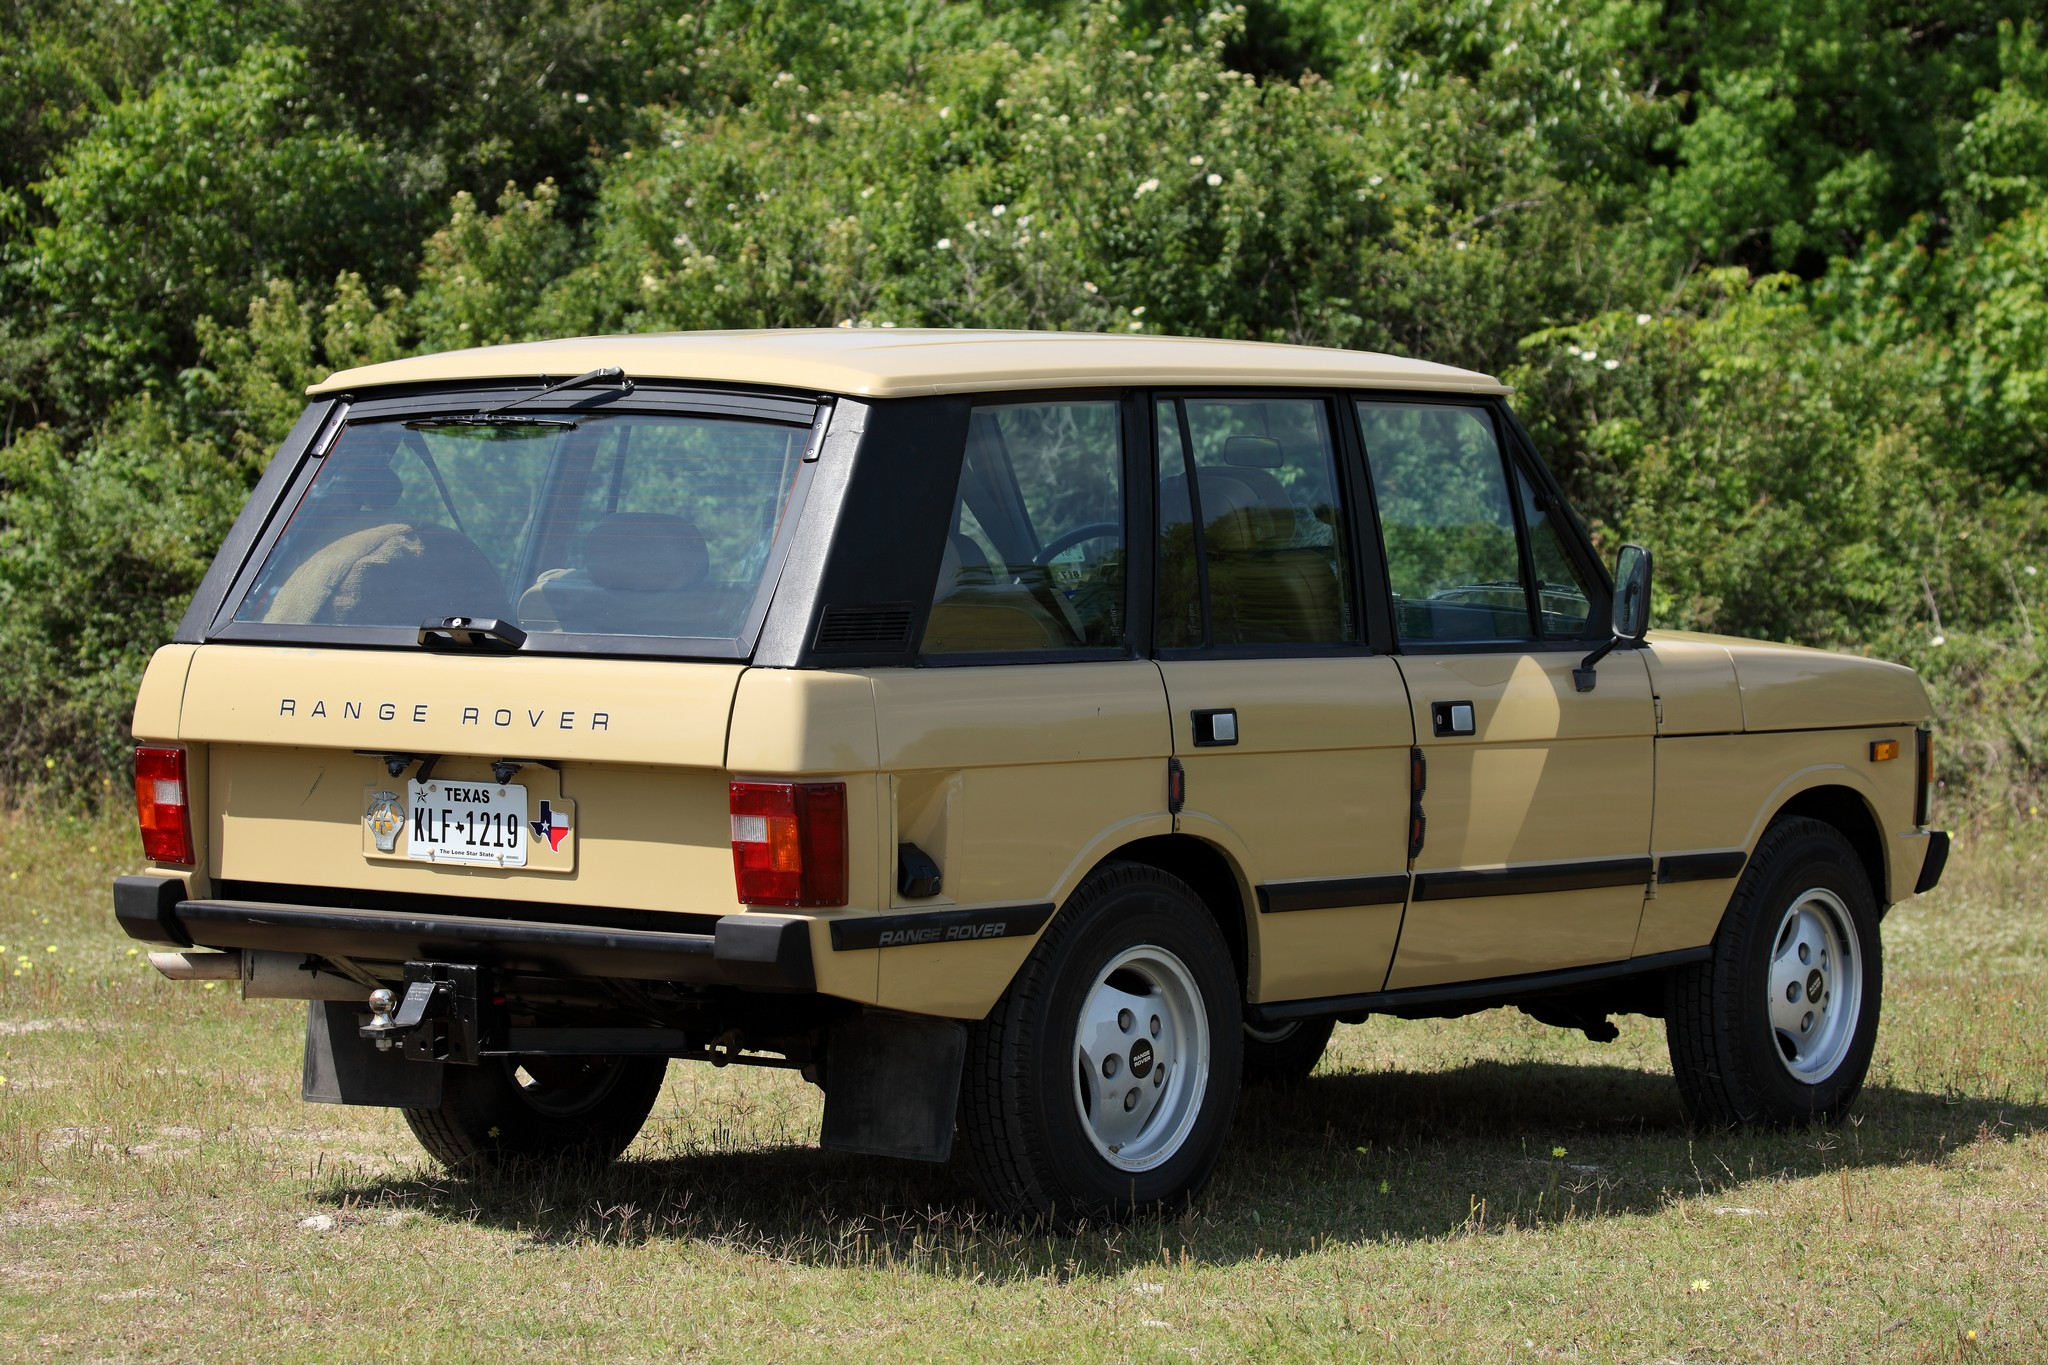 New member, first time Rover owner - 1987 RRC-img_2810_canon-eos-5d-mark-ii_0_117mm_7.1_200s_2048x1536.jpg